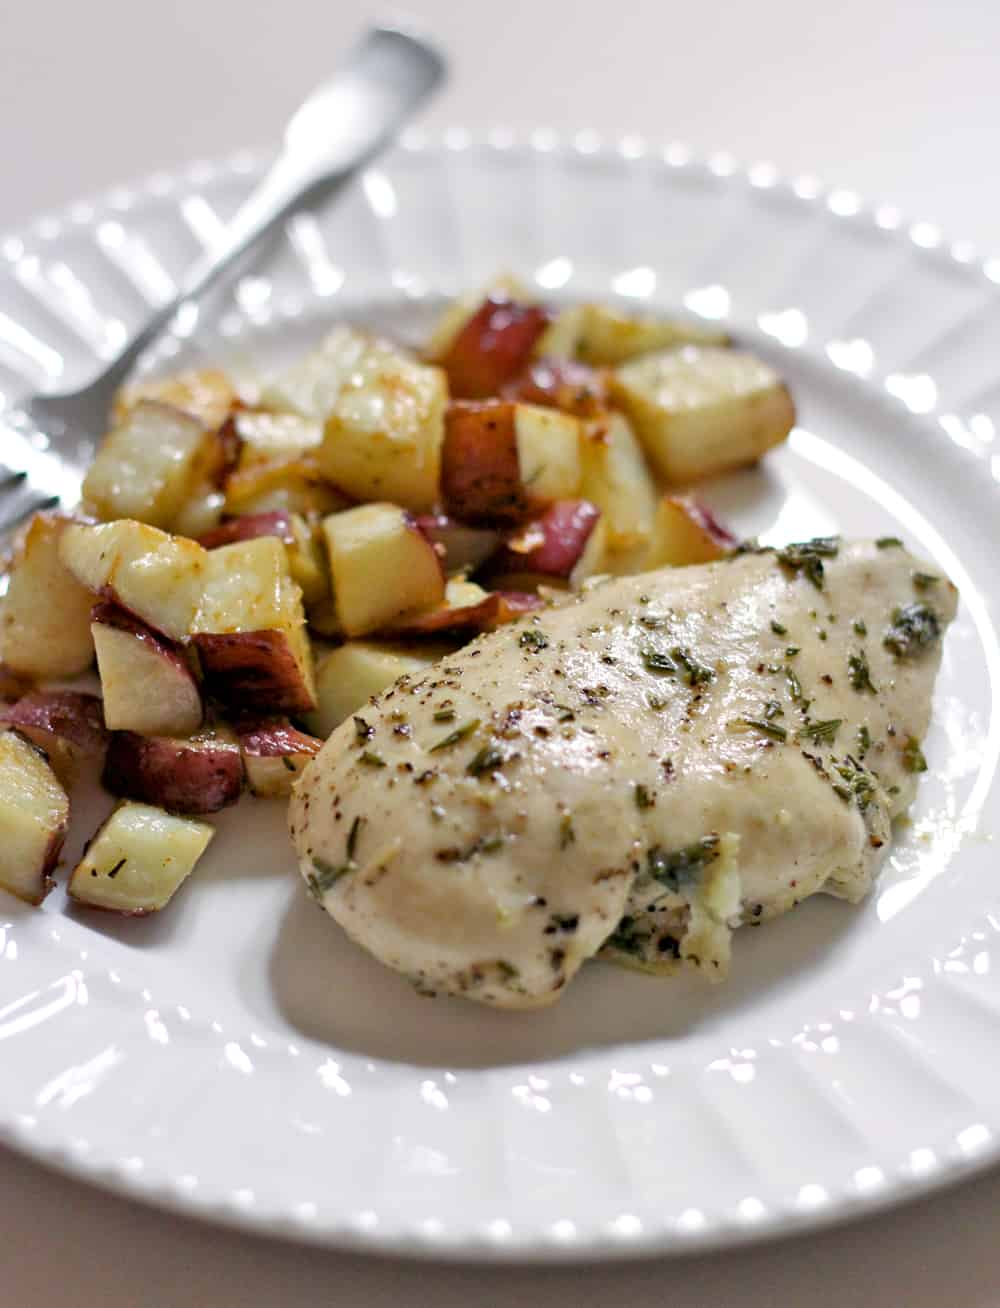 This healthy Whole30 and Paleo friendly rosemary and garlic roast chicken and potatoes dinner is SO easy, SO tasty, and uses only FOUR ingredients!